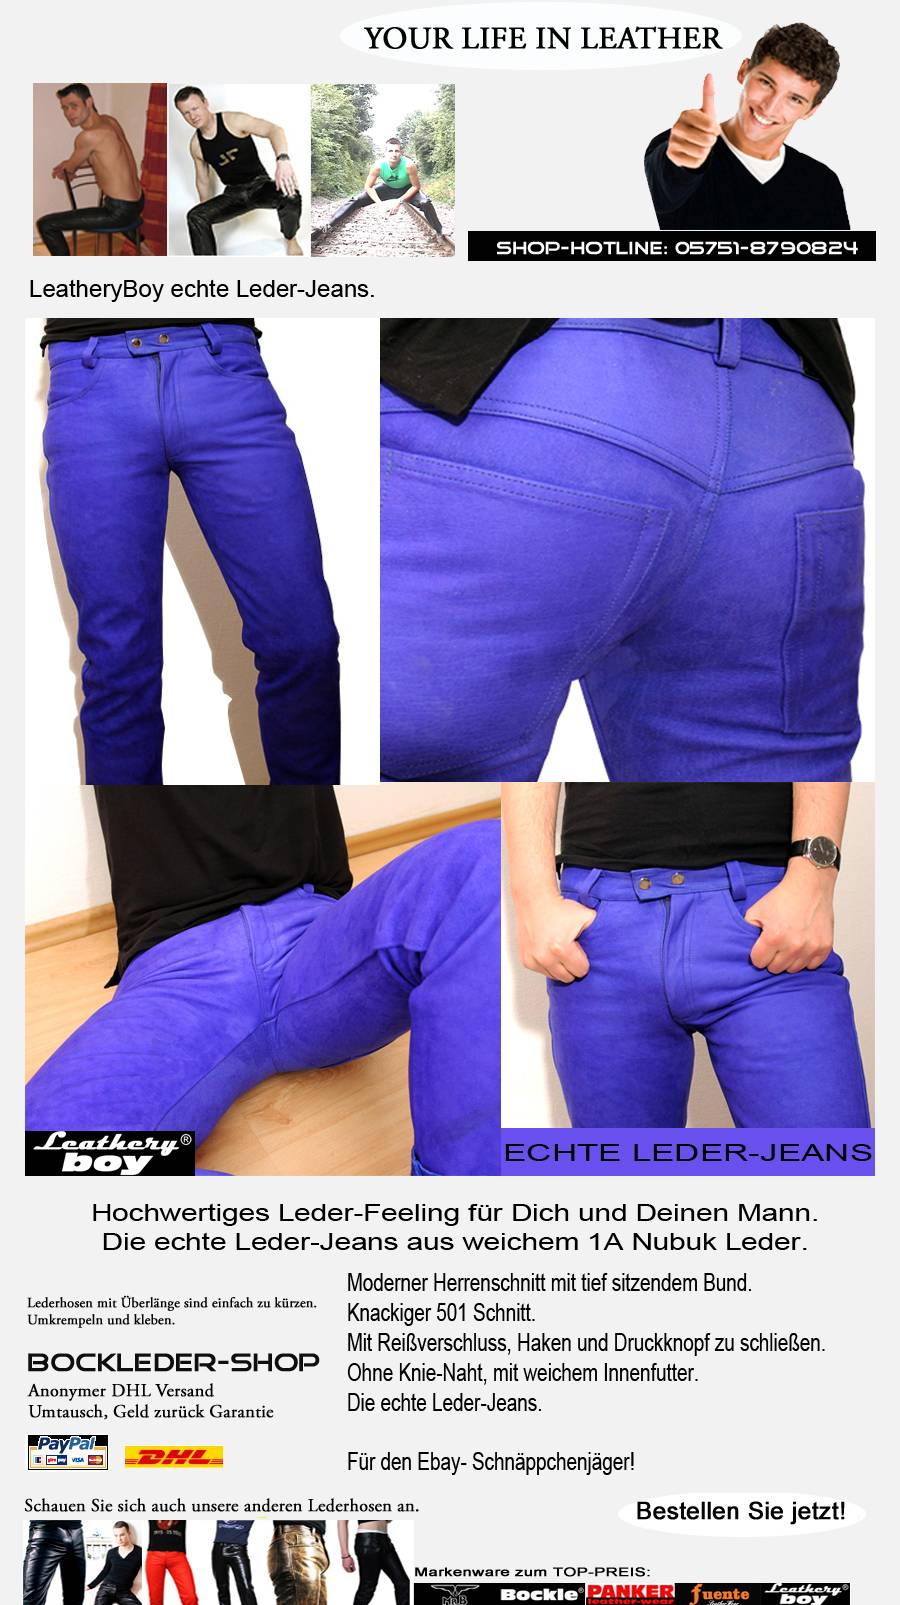 leder jeans von leathery boy zum top preis blaue lederhose blue leather trousers. Black Bedroom Furniture Sets. Home Design Ideas